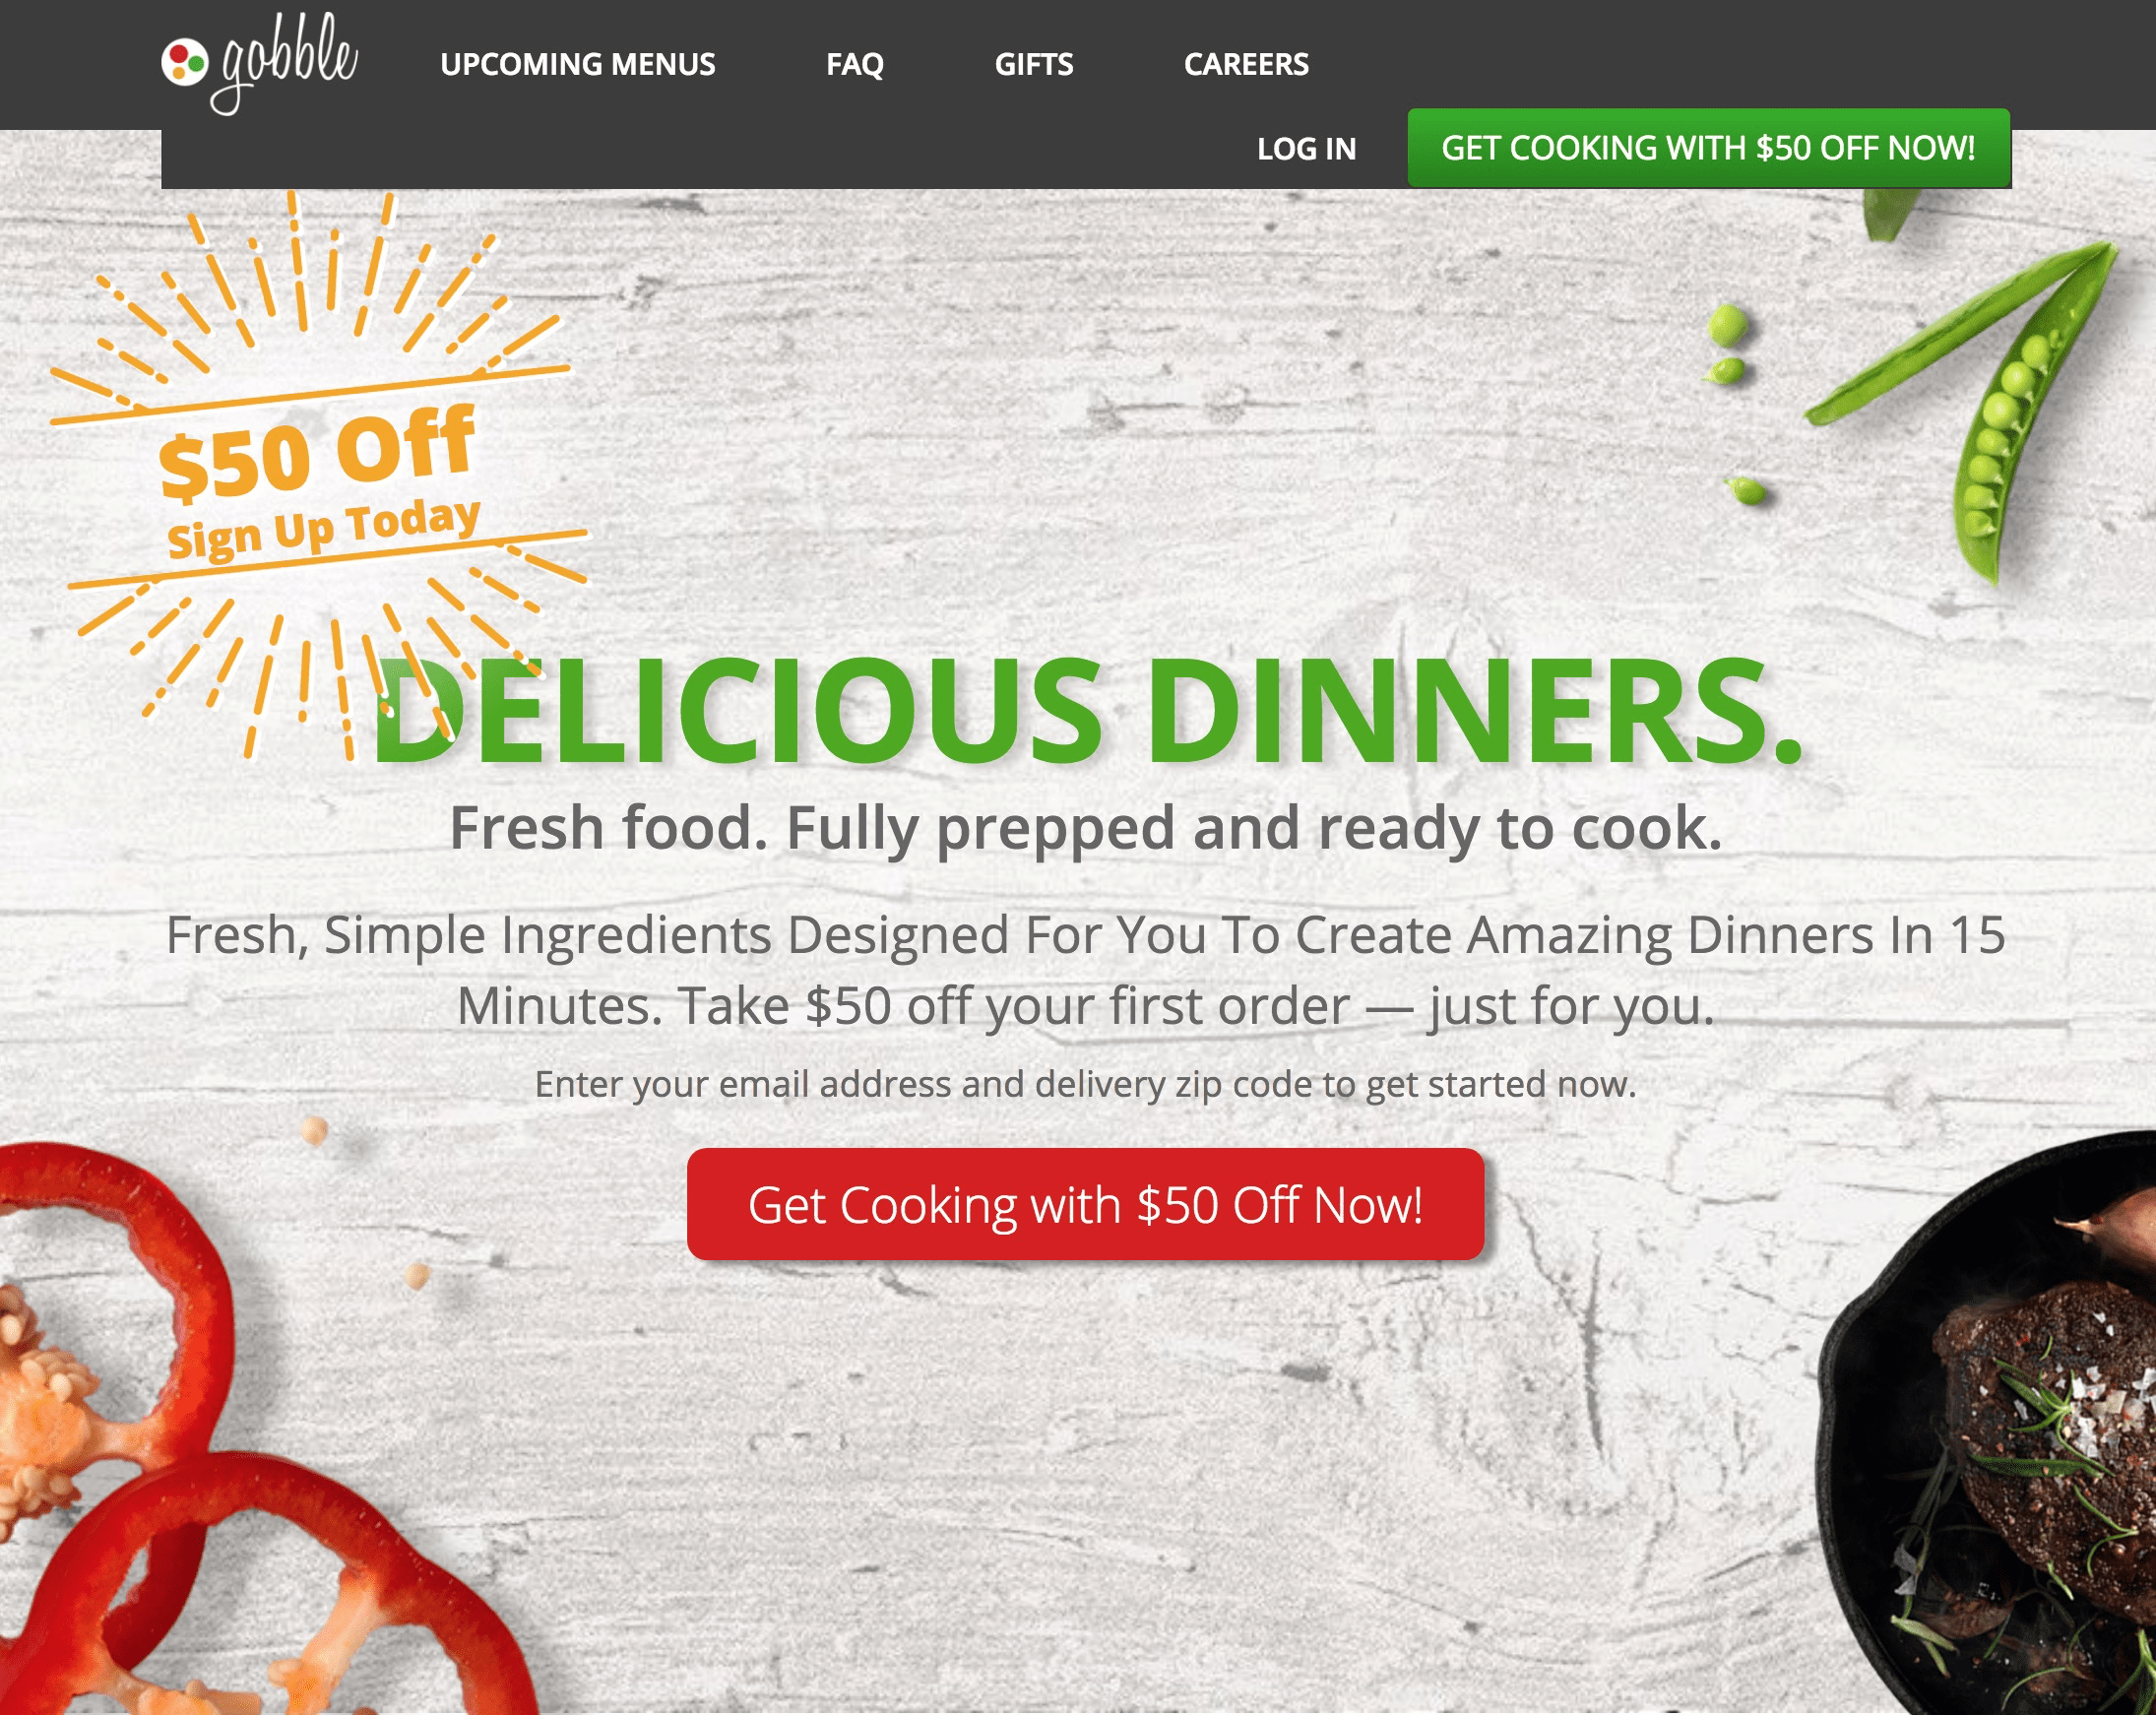 Gobble coupon code